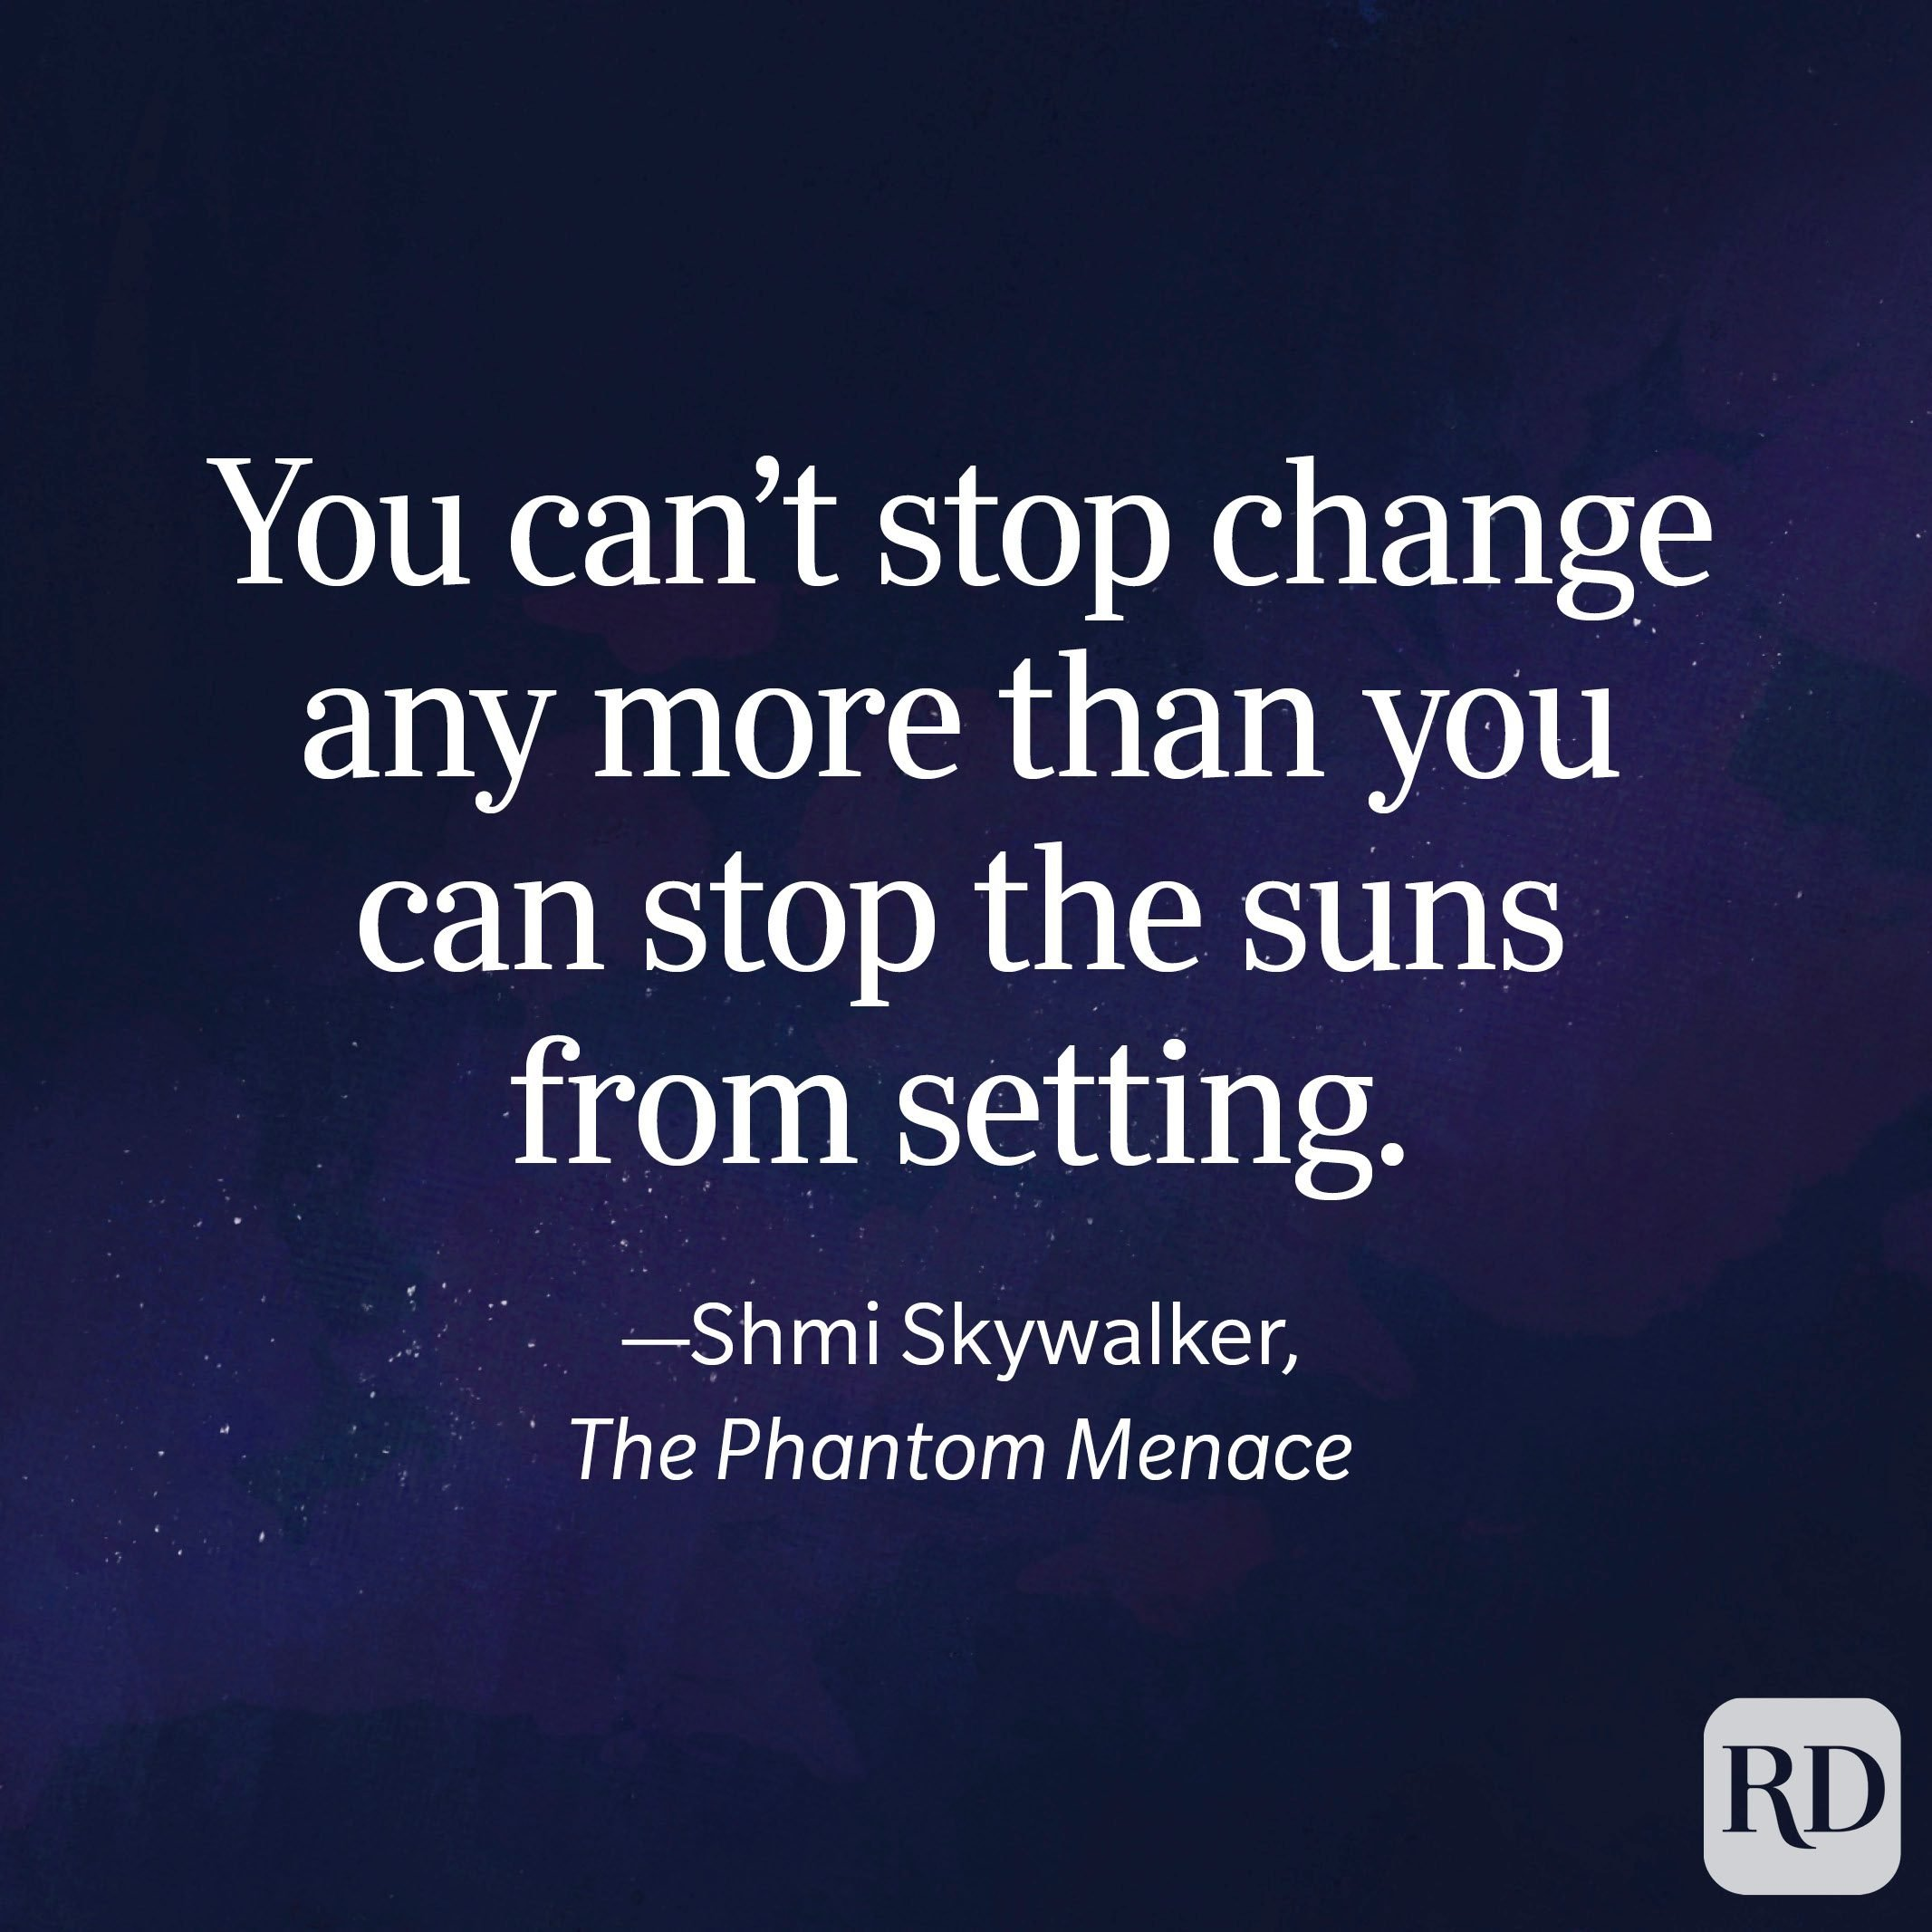 """""""You can't stop change any more than you can stop the suns from setting."""" —Shmi Skywalker, The Phantom Menace"""